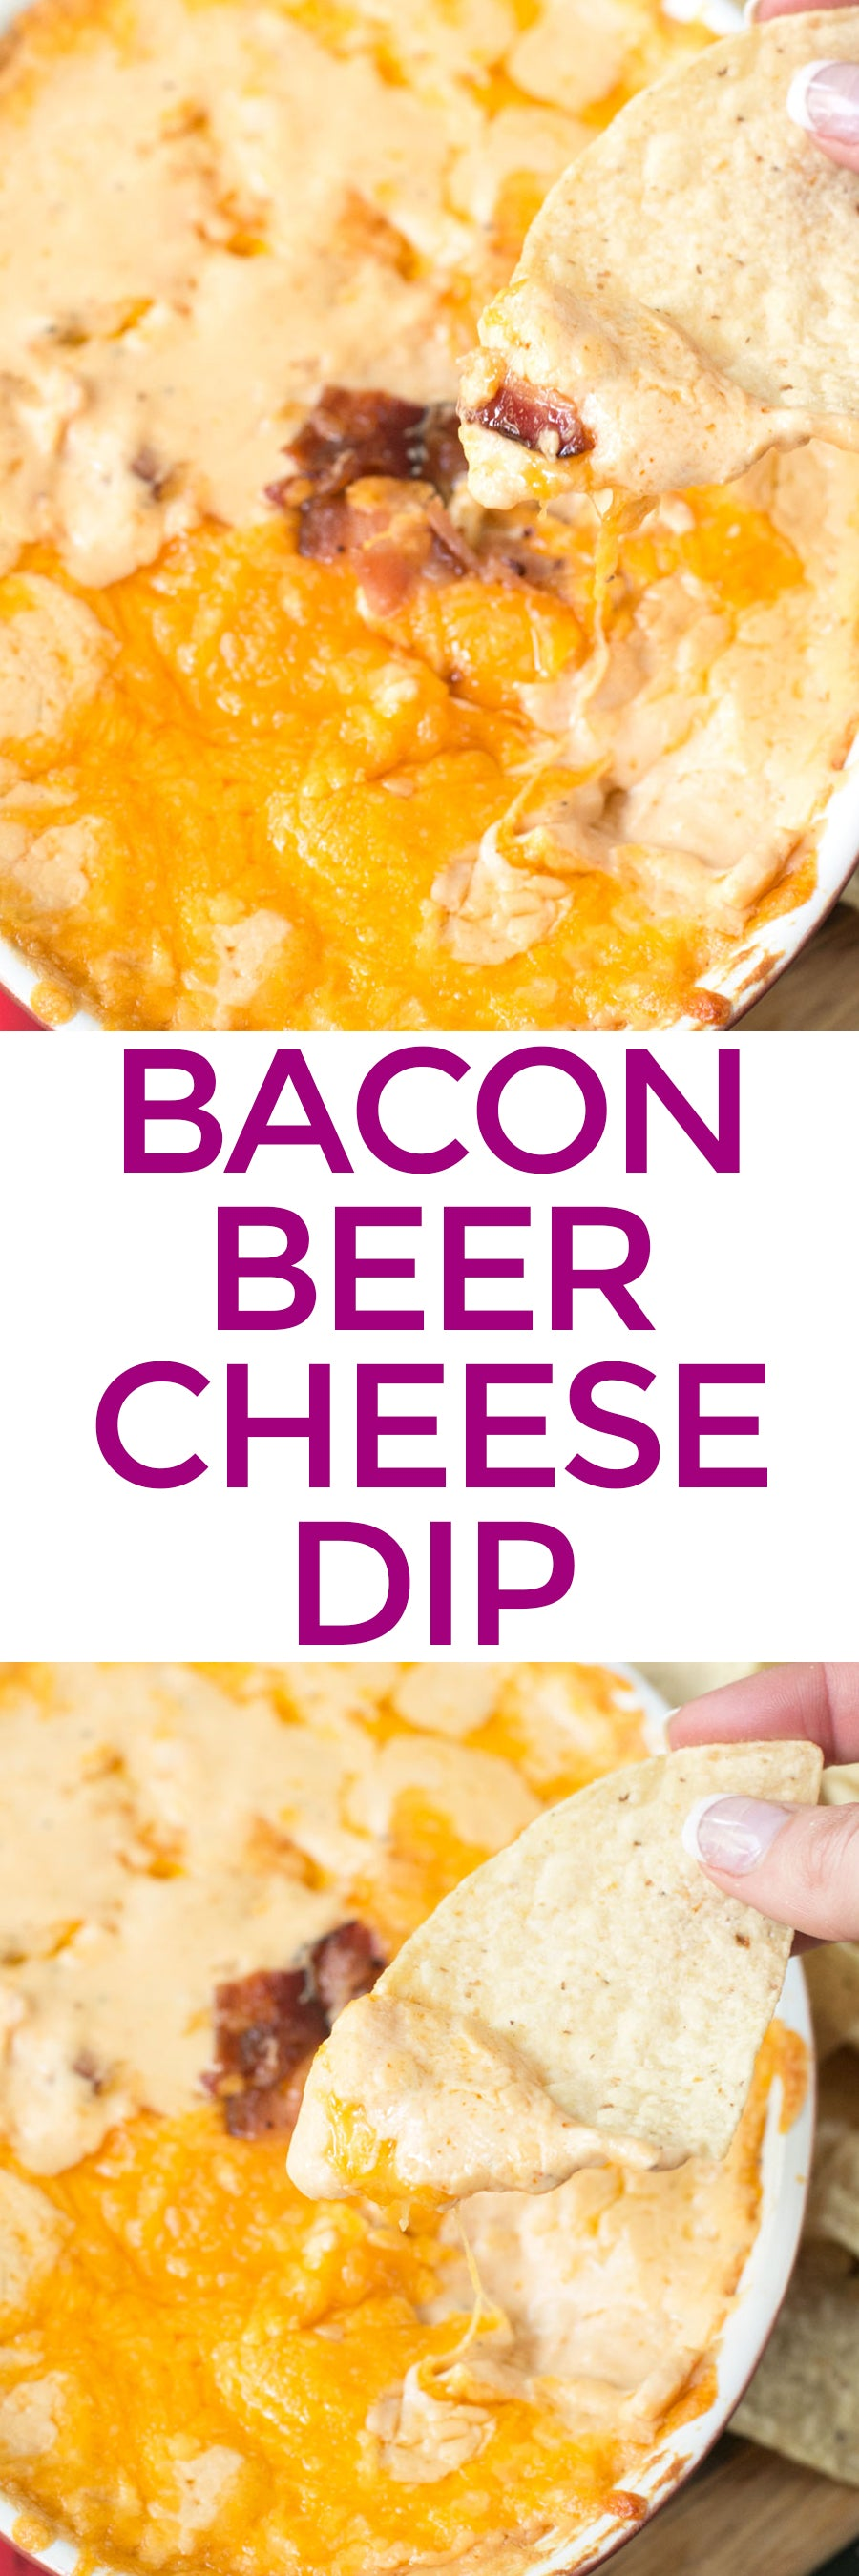 Bacon Beer Cheese Dip | pigofthemonth.com #tailgating #bacon #beer